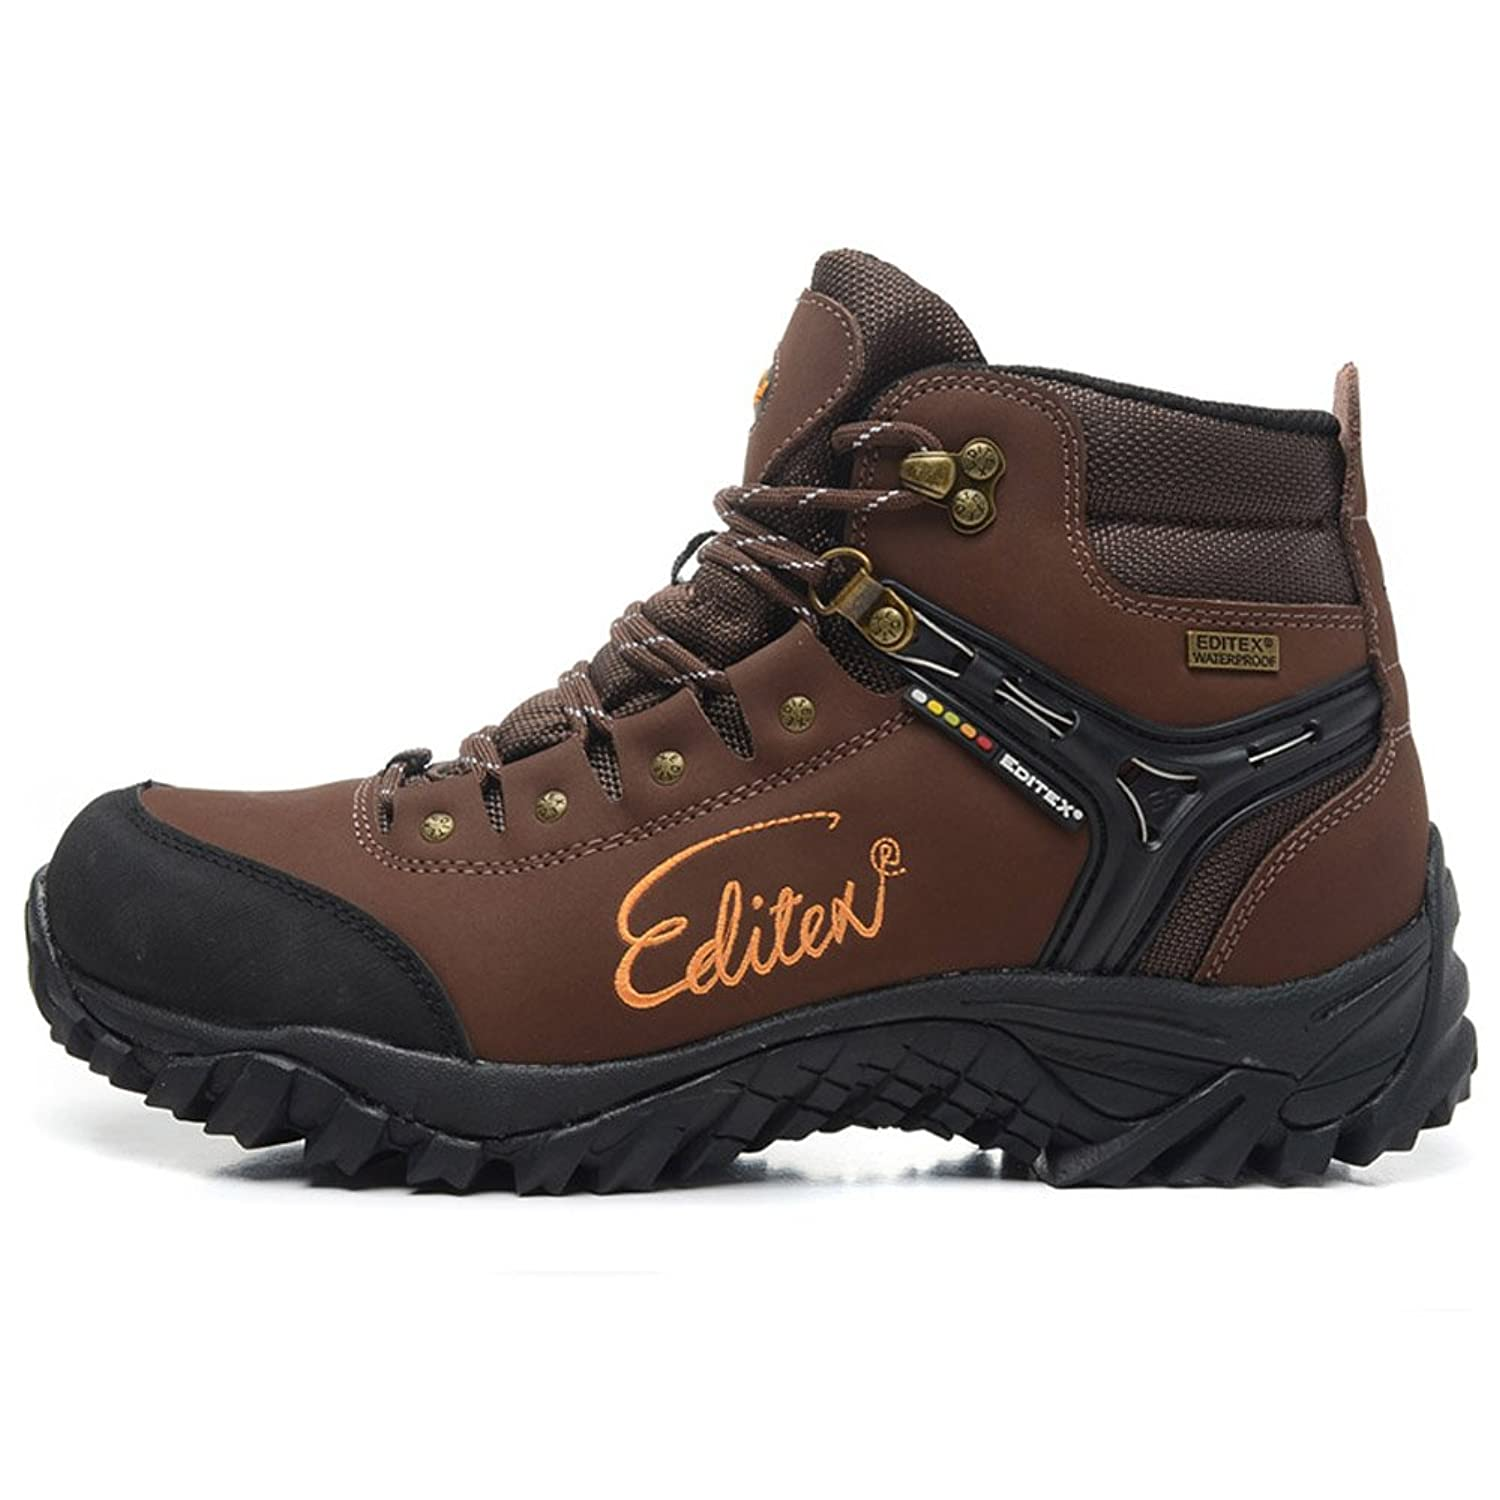 Editex Mans Outdoor Hiking Boots Waterproo Fleather Upper and Fabric Lining Rubber Outsole Two Colors (Tan 8.0(M)US)